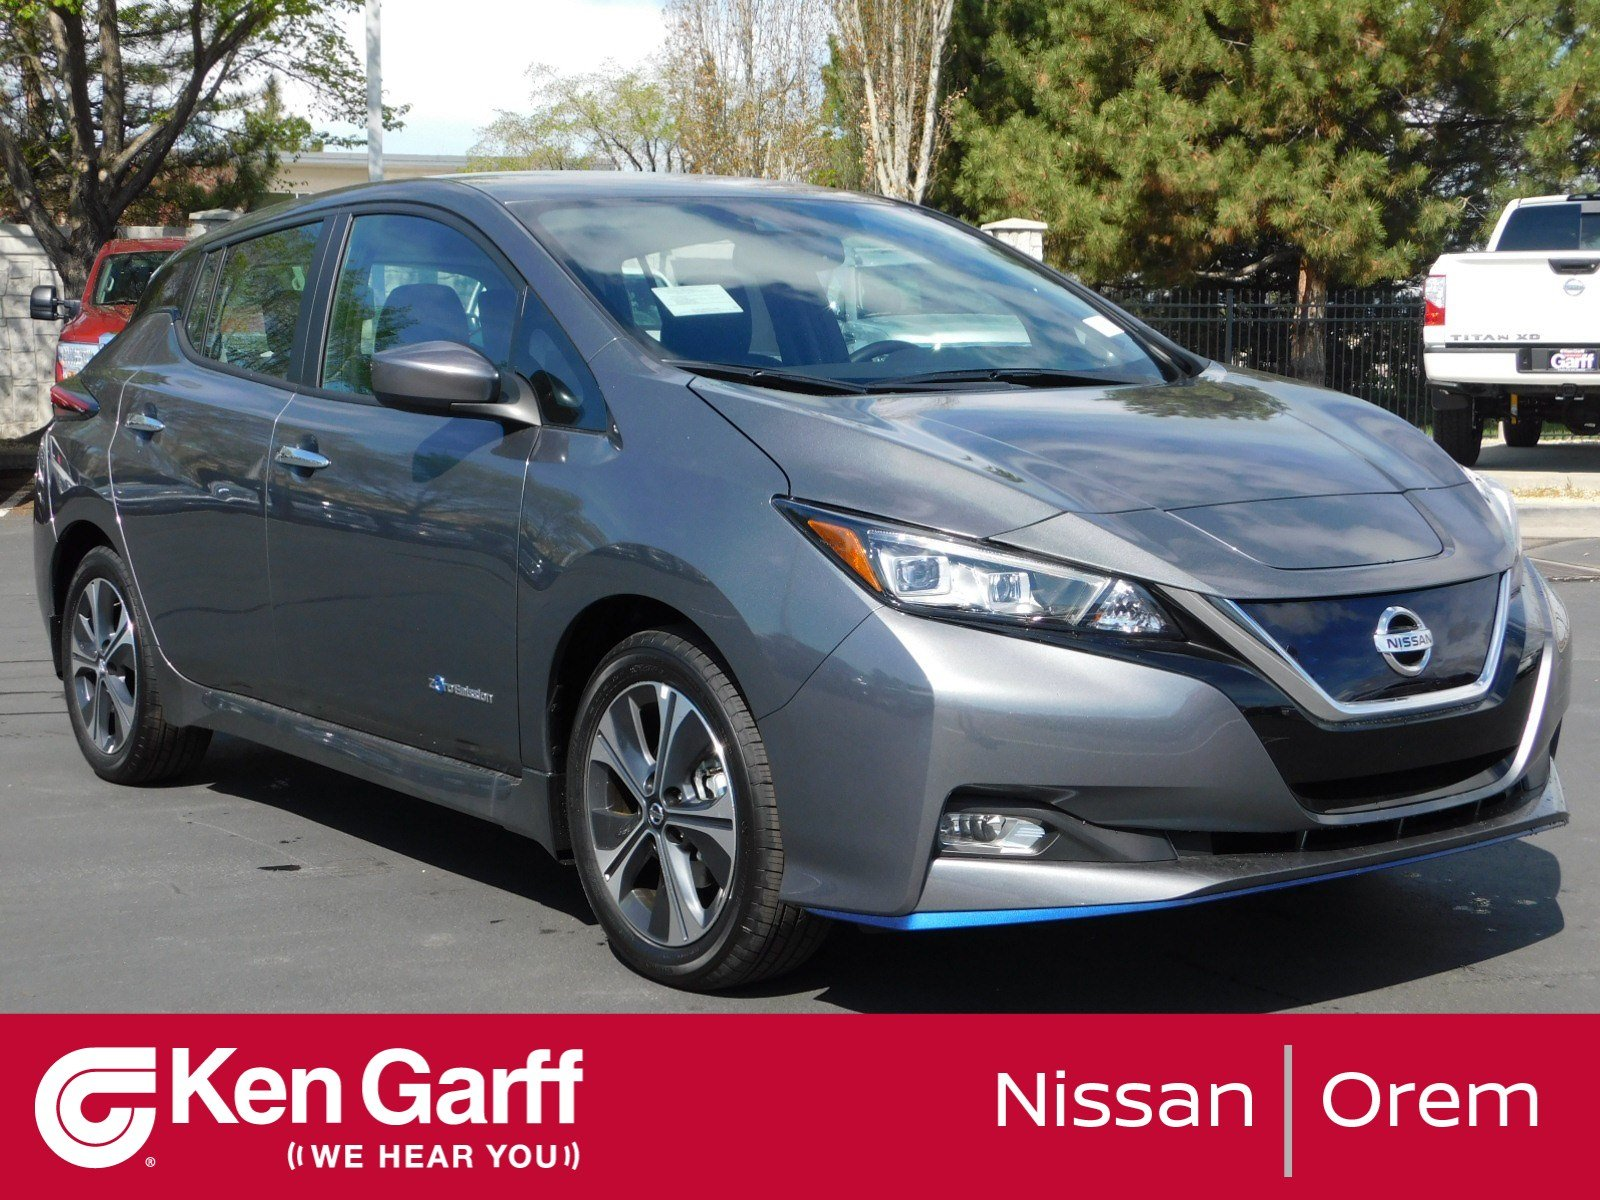 New 2019 Nissan Leaf Sv Plus Hatchback In Orem 2n90228 Ken Garff